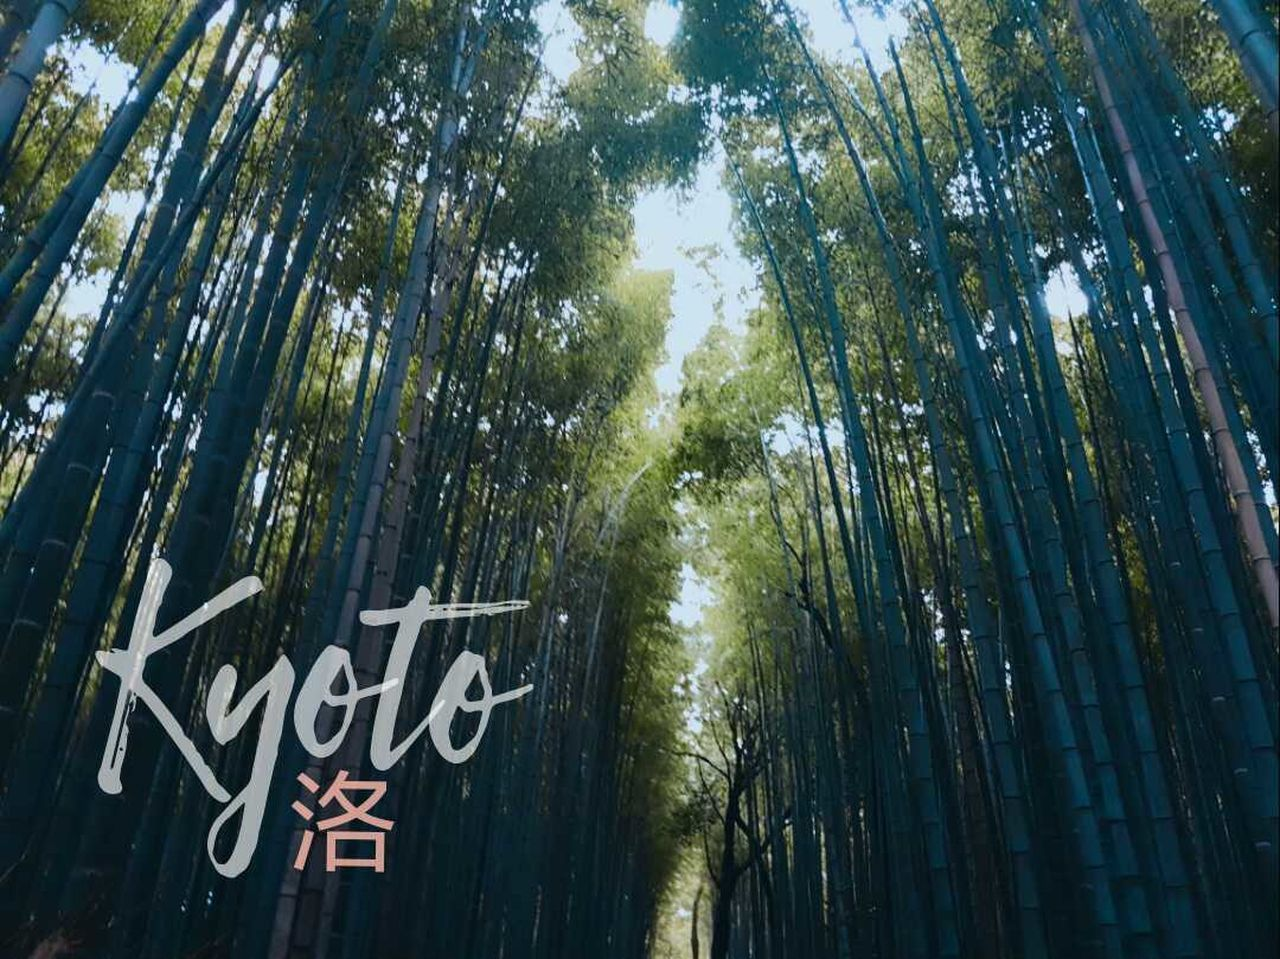 text, communication, day, tree, outdoors, low angle view, no people, growth, bamboo - plant, nature, bamboo grove